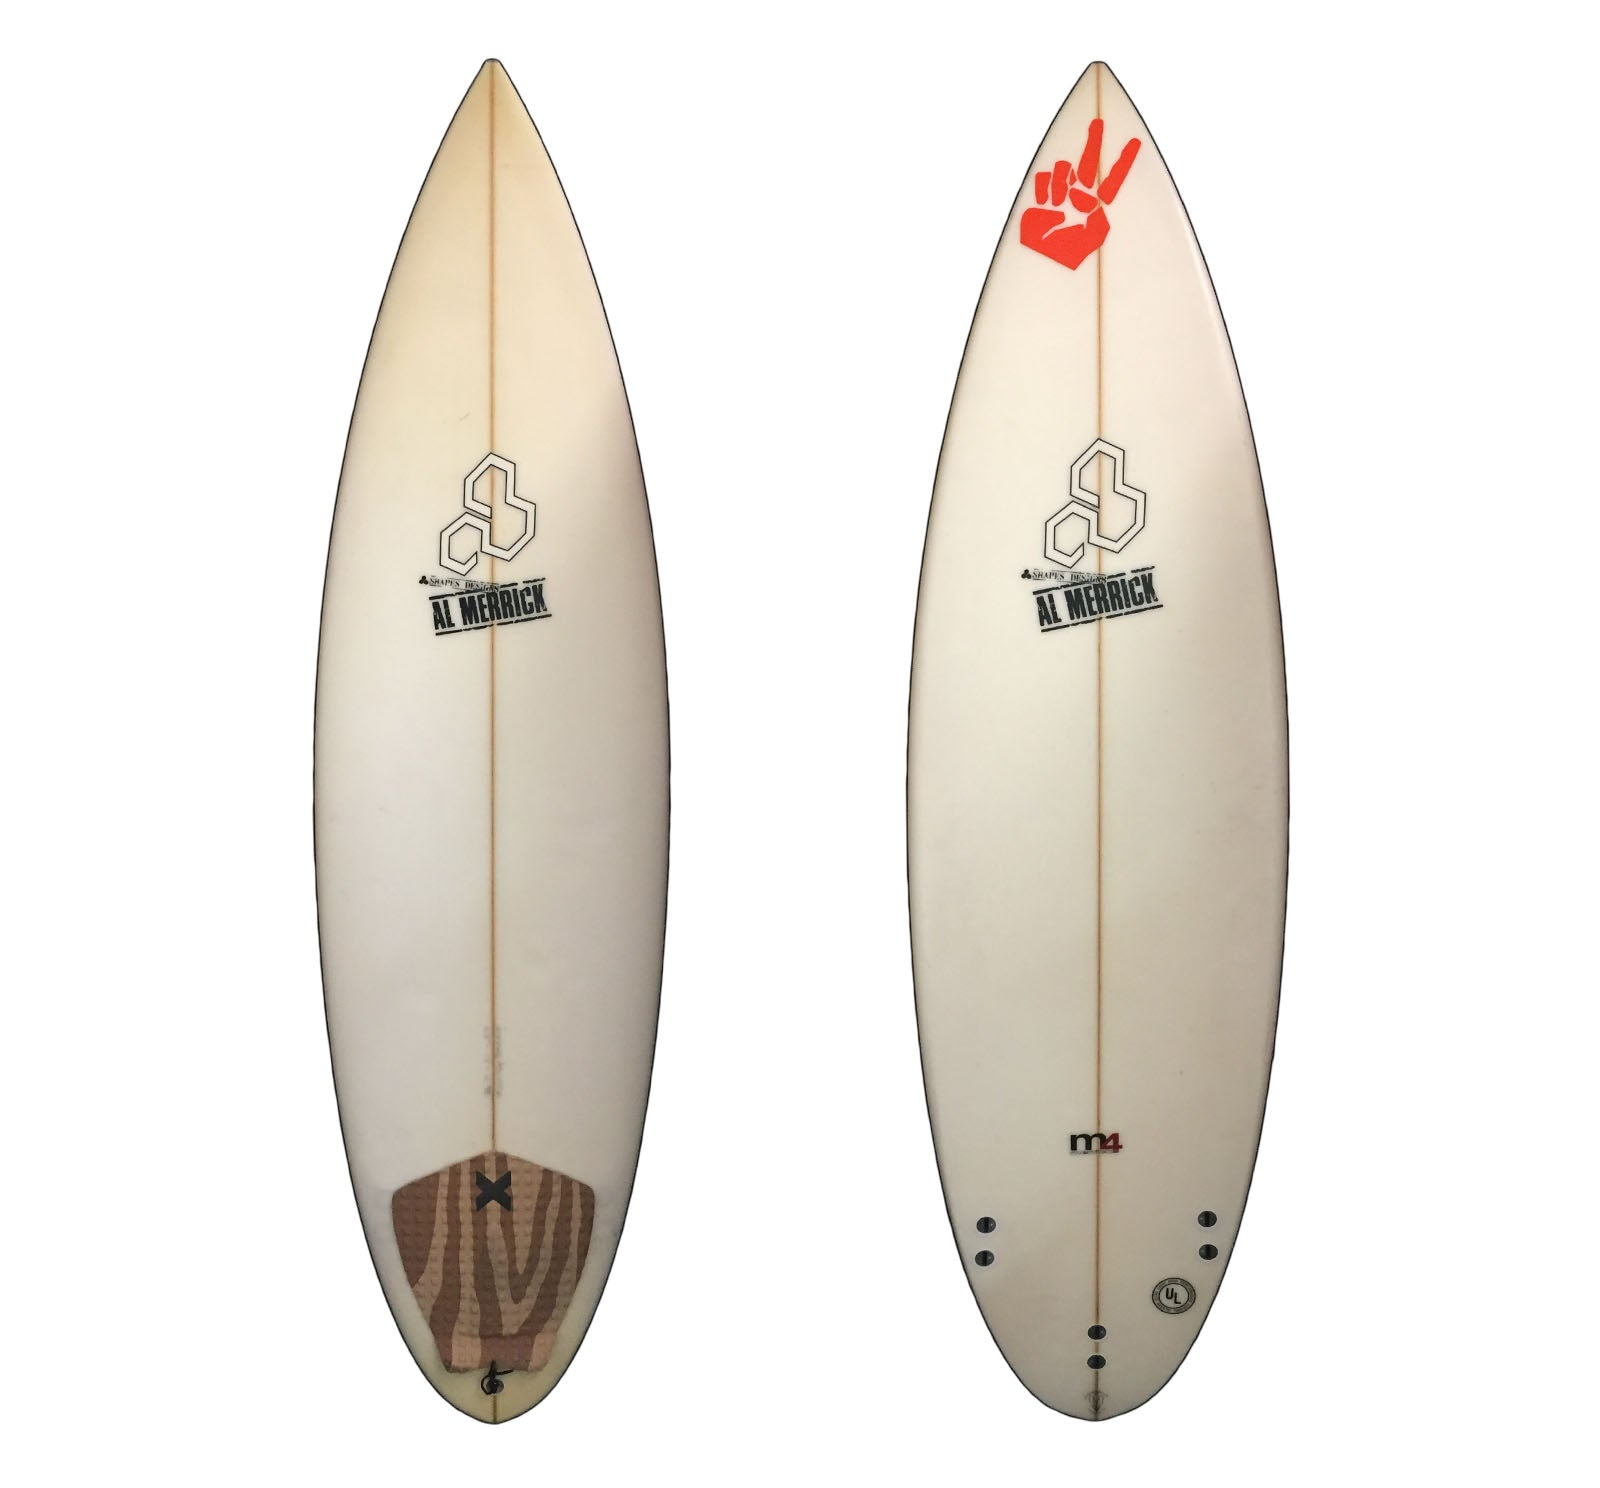 Channel Islands M4 6'0 Used Surfboard